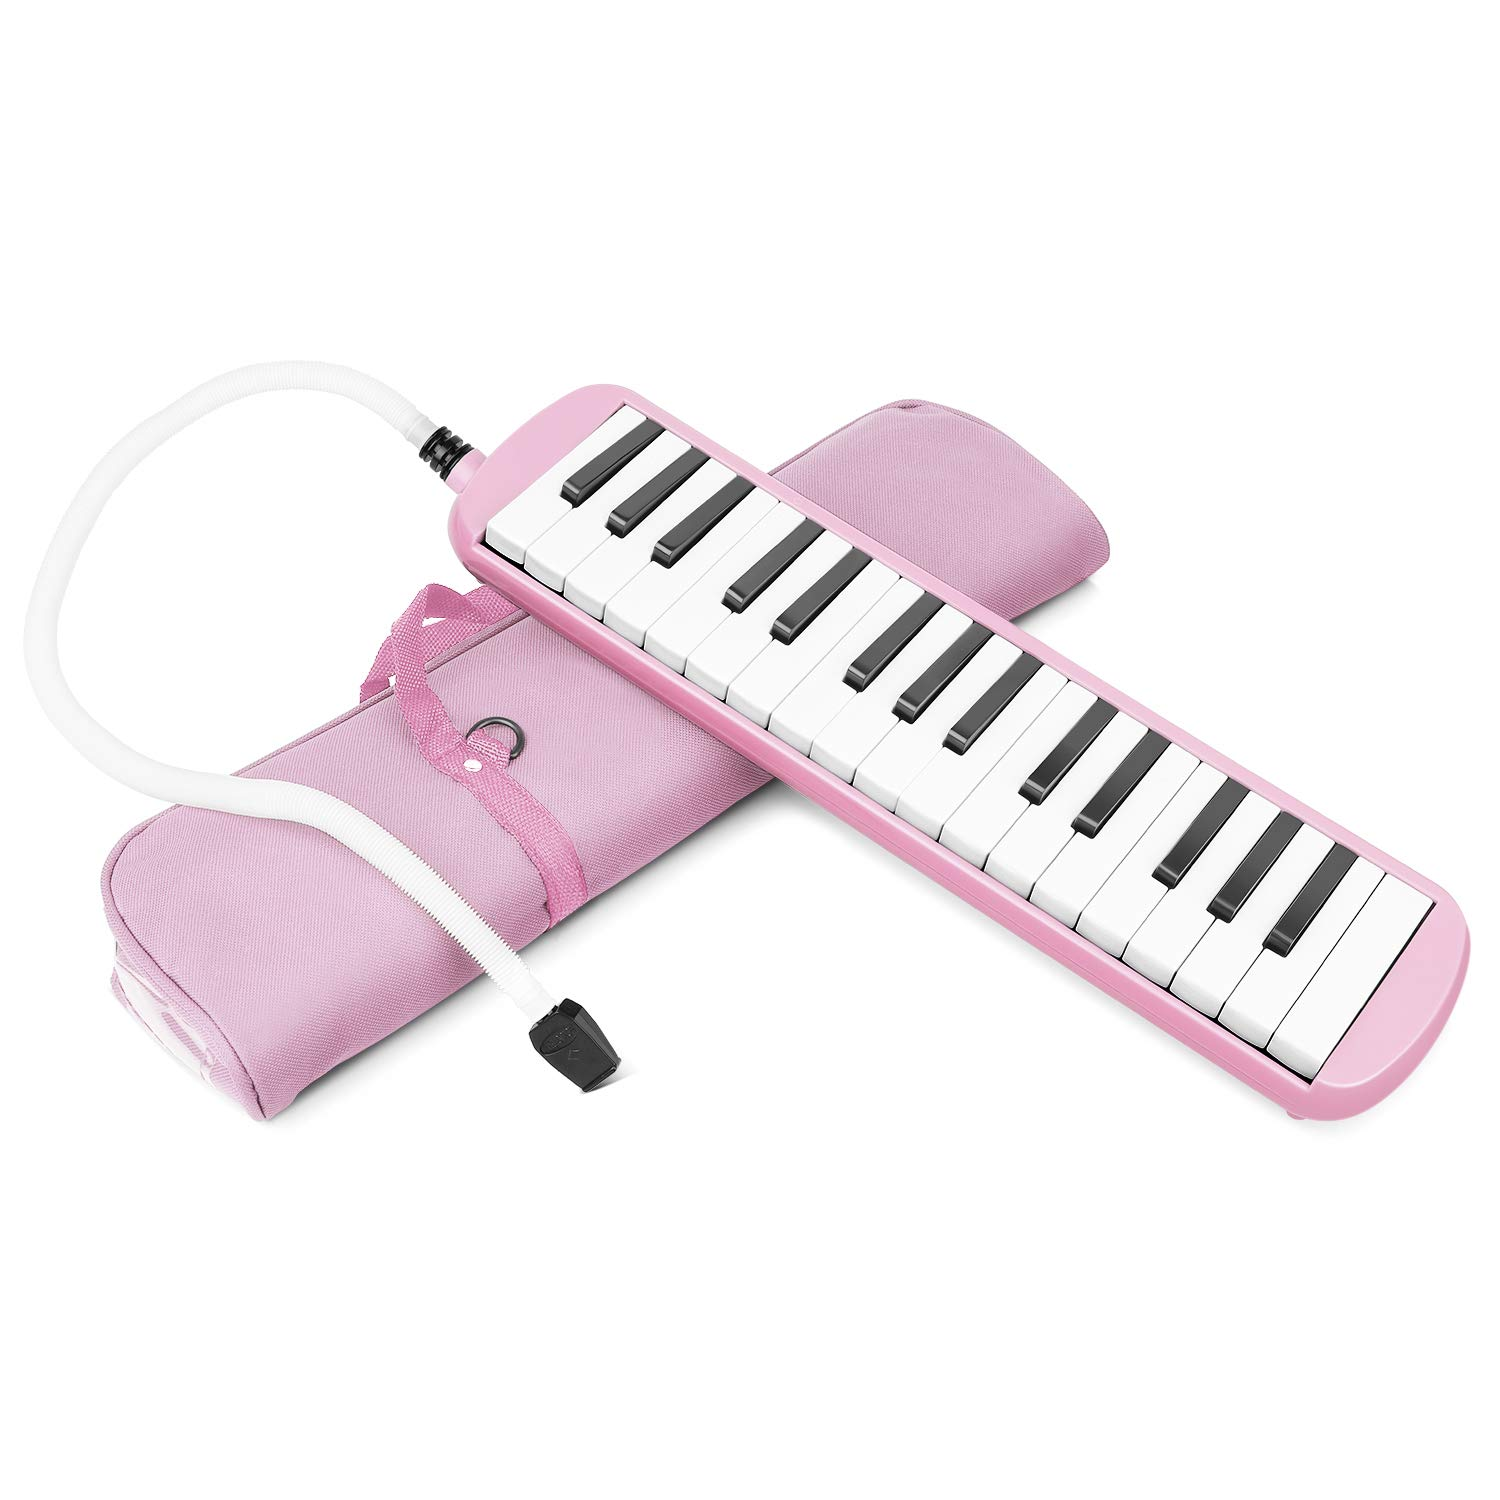 Flexzion Melodica 32 Piano Keys - Melodica Keyboard with Mouthpiece Tube, Portable Musical Instrument Pianica Melodicas Piano Style with Carrying Bag (32 Key) (Pink)